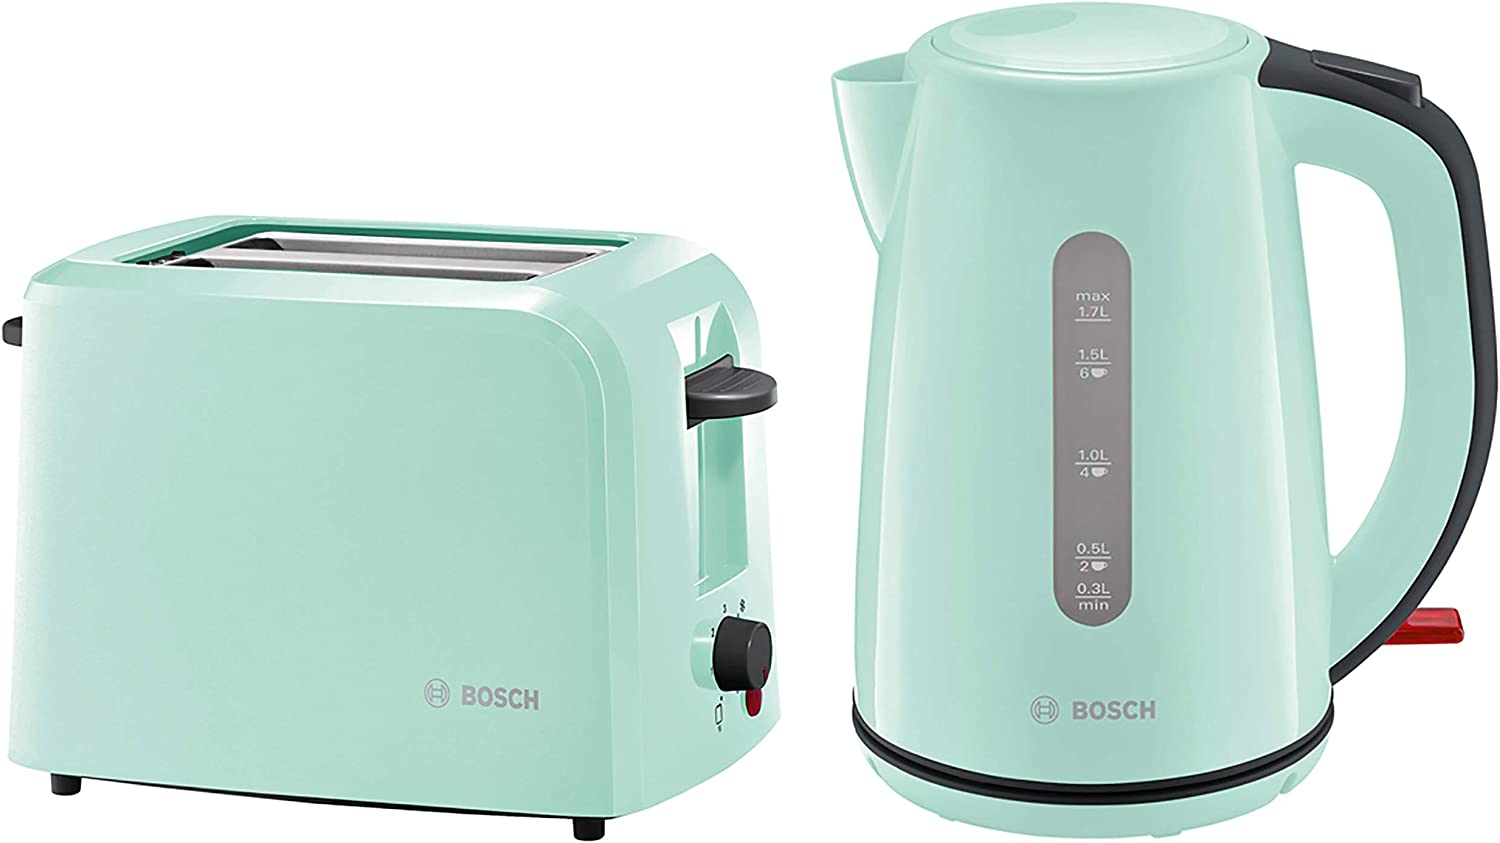 Bosch COMBO-3474 Country 1.7 Litre Kettle with Two Slice Toaster, Mint Green